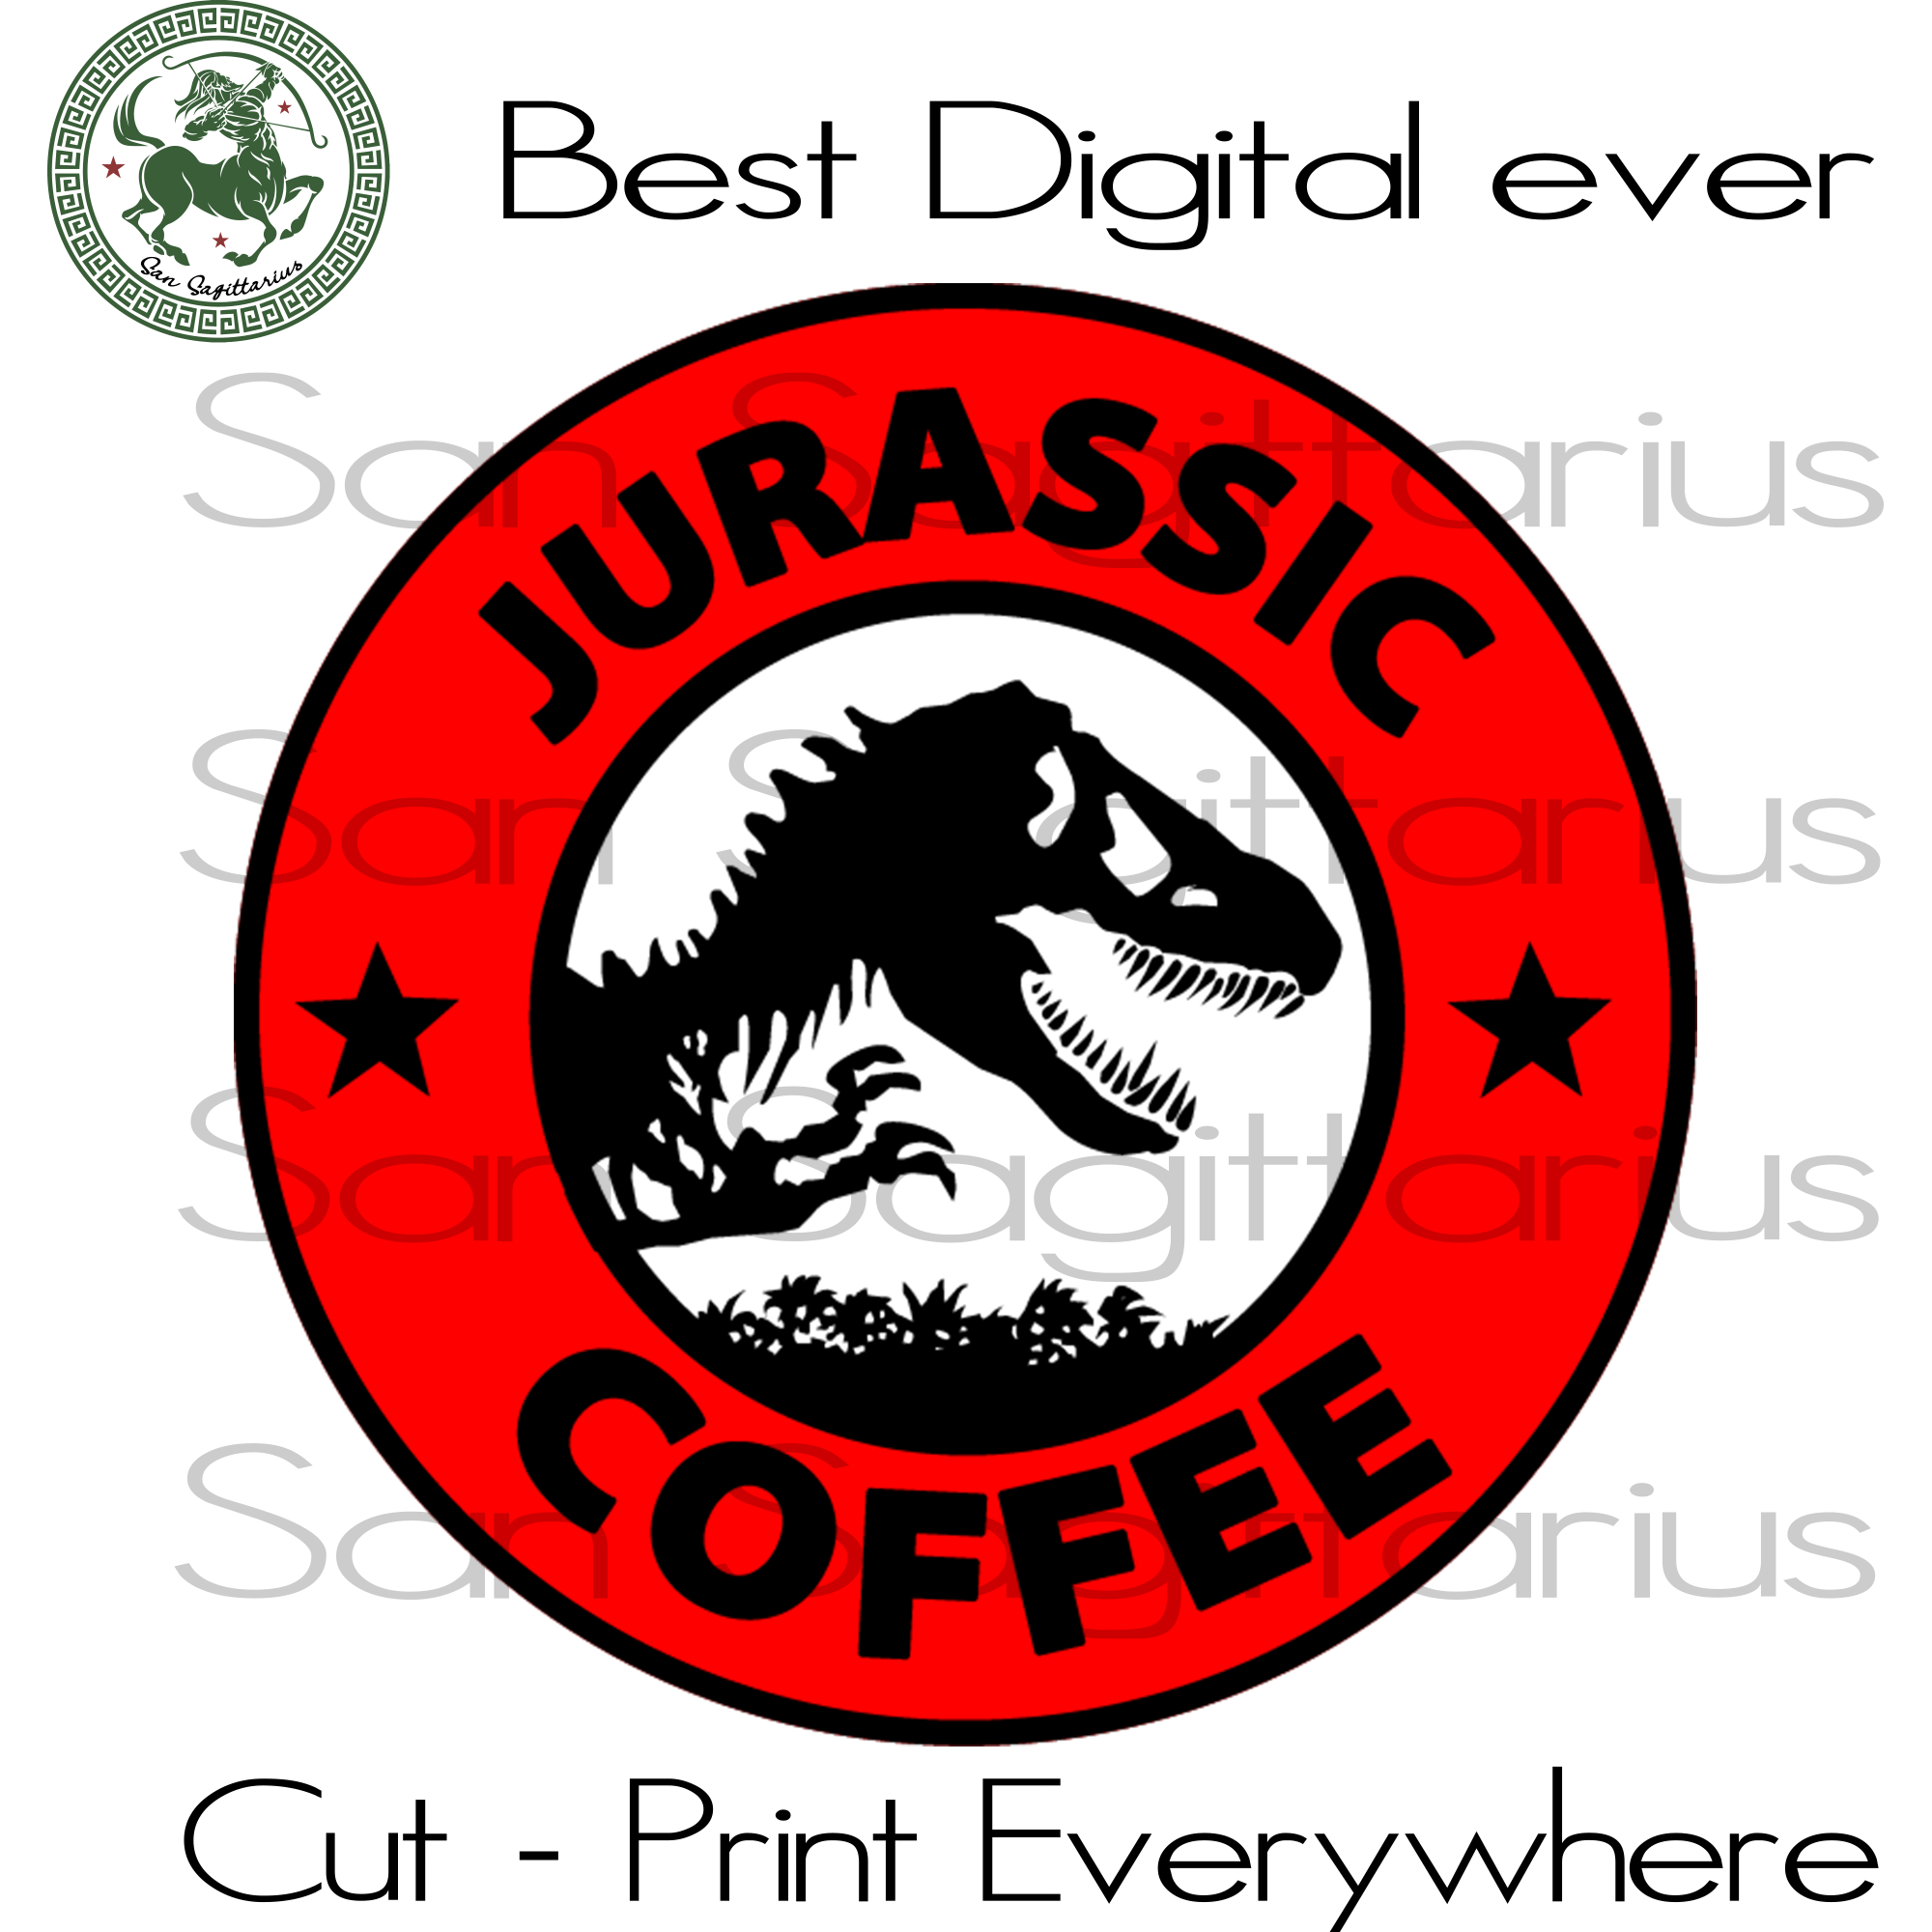 Jurassic Park Coffee Best Gifts For Coffee Lovers SVG Files For Cricut Silhouette Instant Download | San Sagittarius